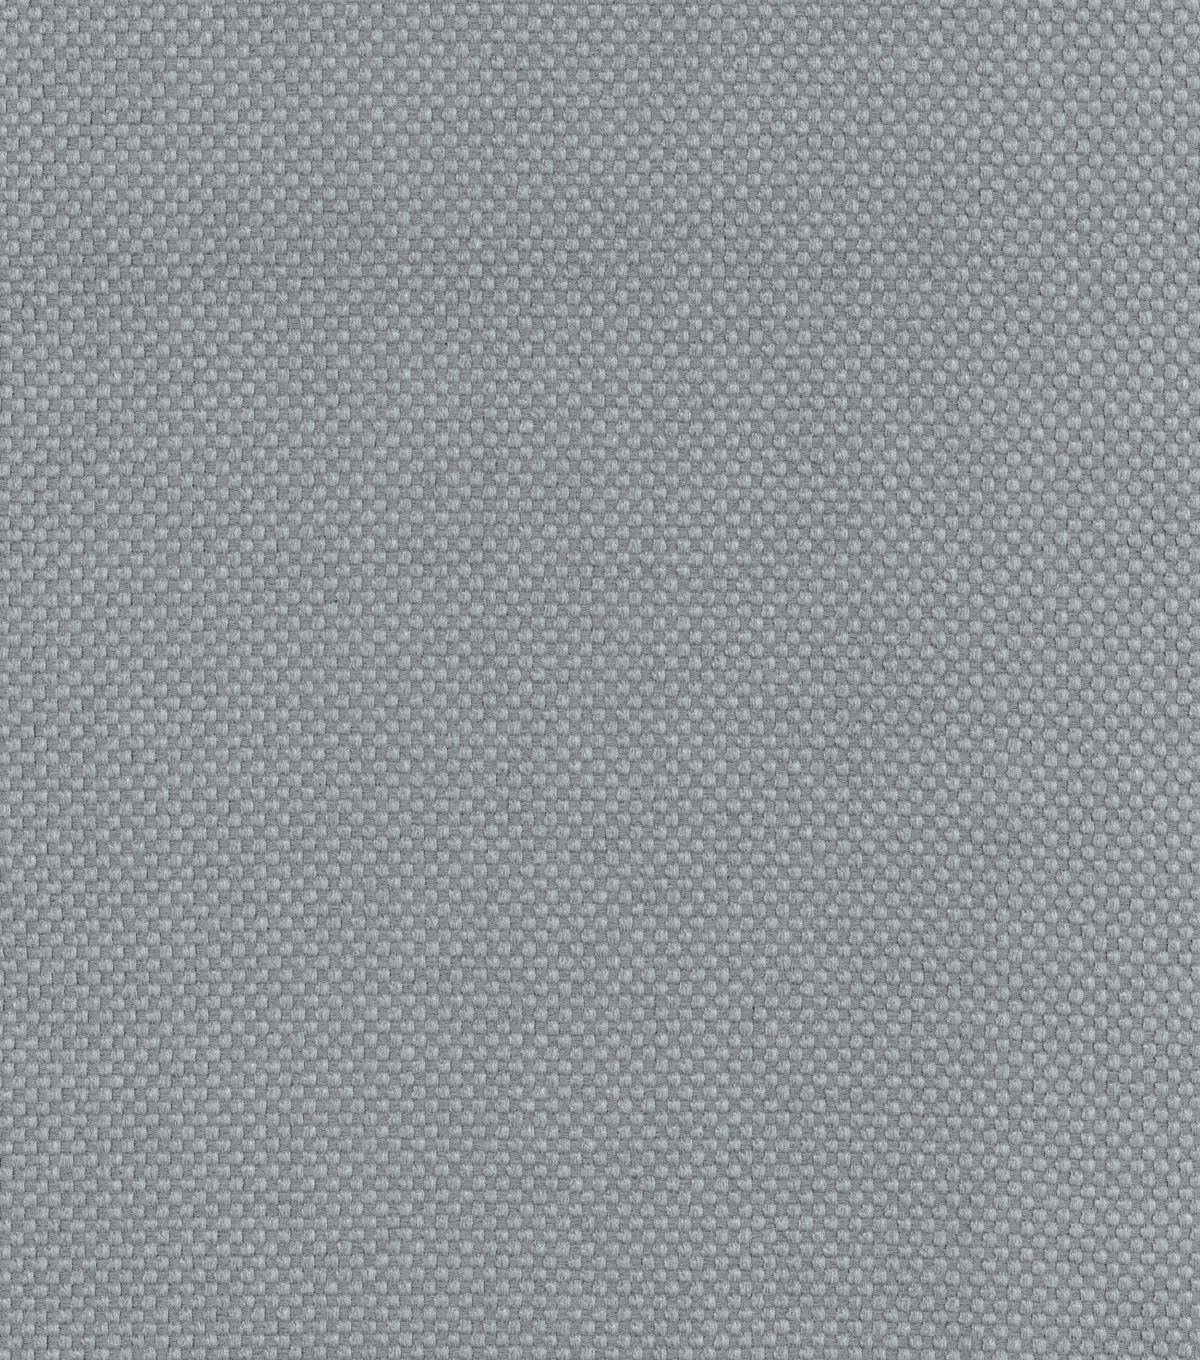 Home Decor 8\u0022x8\u0022 Swatch Fabric-Waverly SoHo Solid Flint